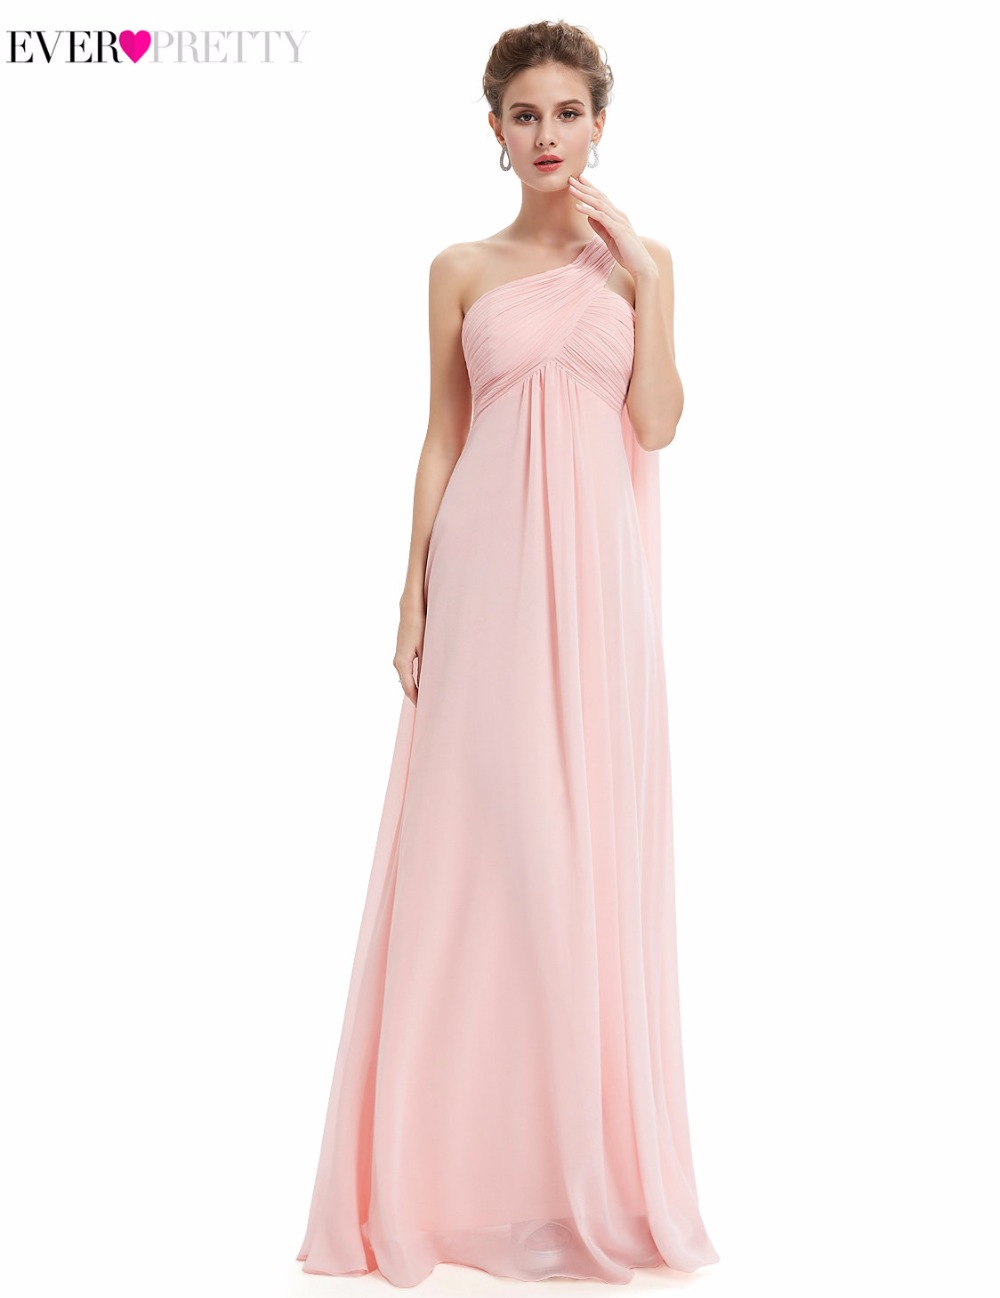 Clearance Sale Long Bridesmaid Dresses Ever Pretty